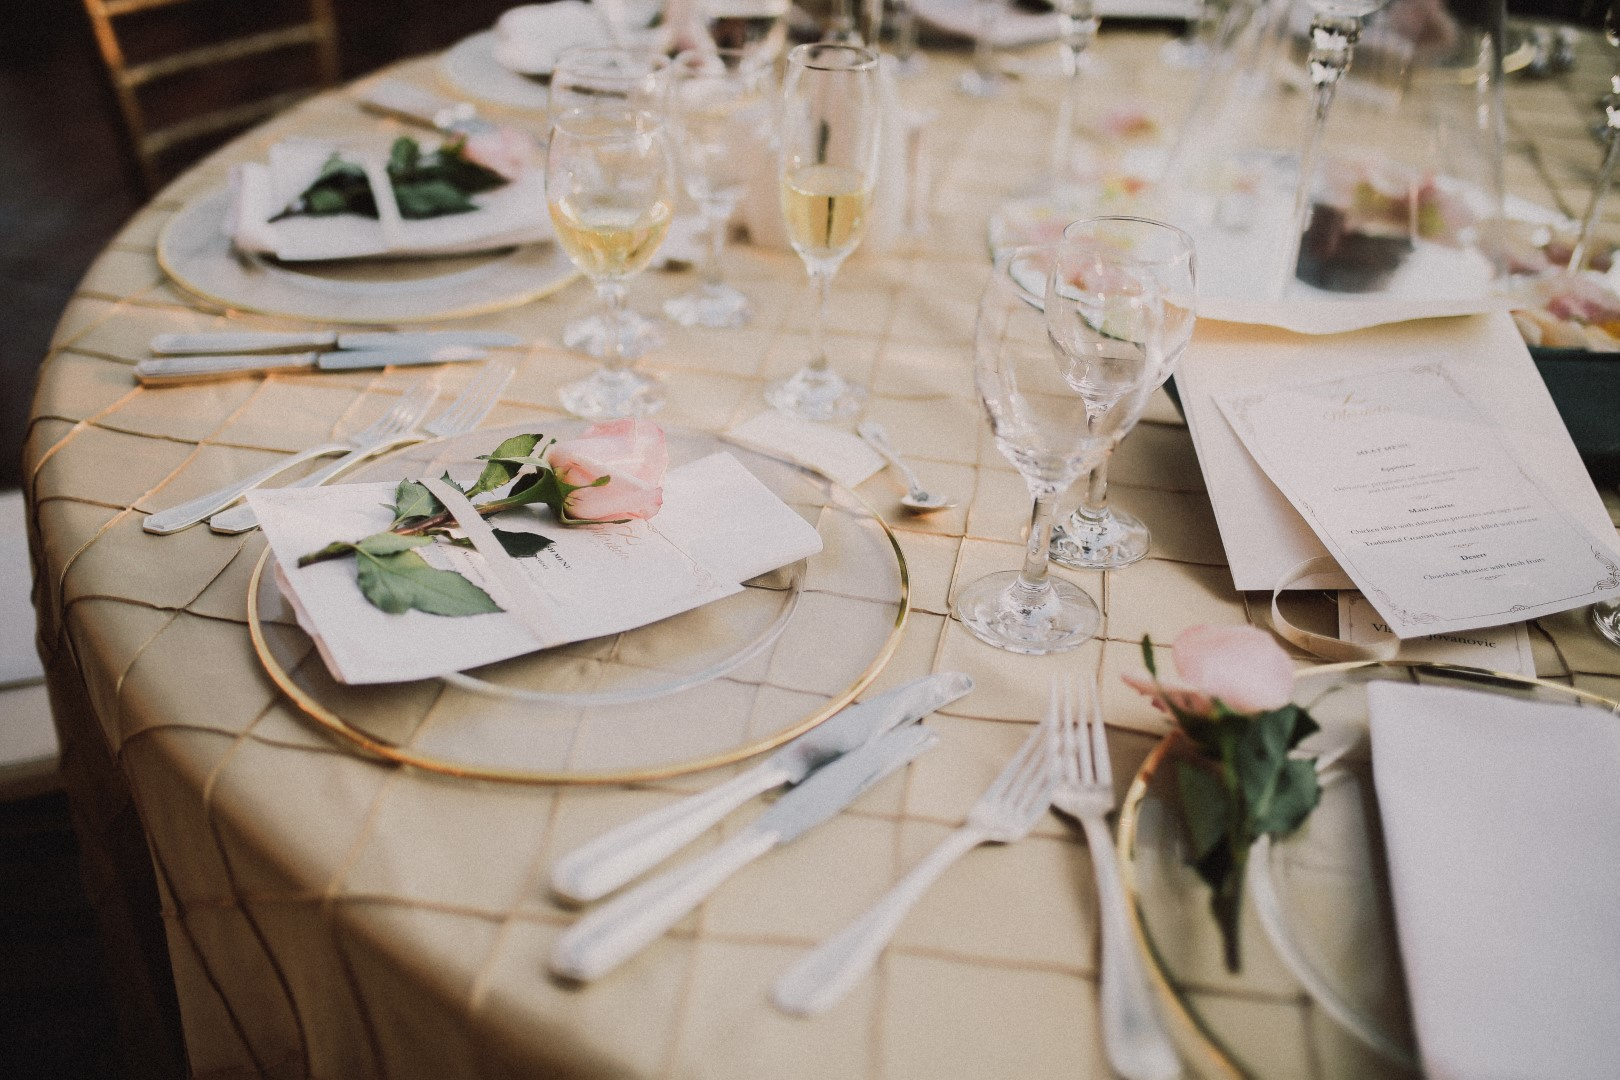 This is a close up of the wedding reception table. The tablecloth is blush as well as the flowers. Some of the flowers are white. There are plates and glasses as well as cutlery and menus.